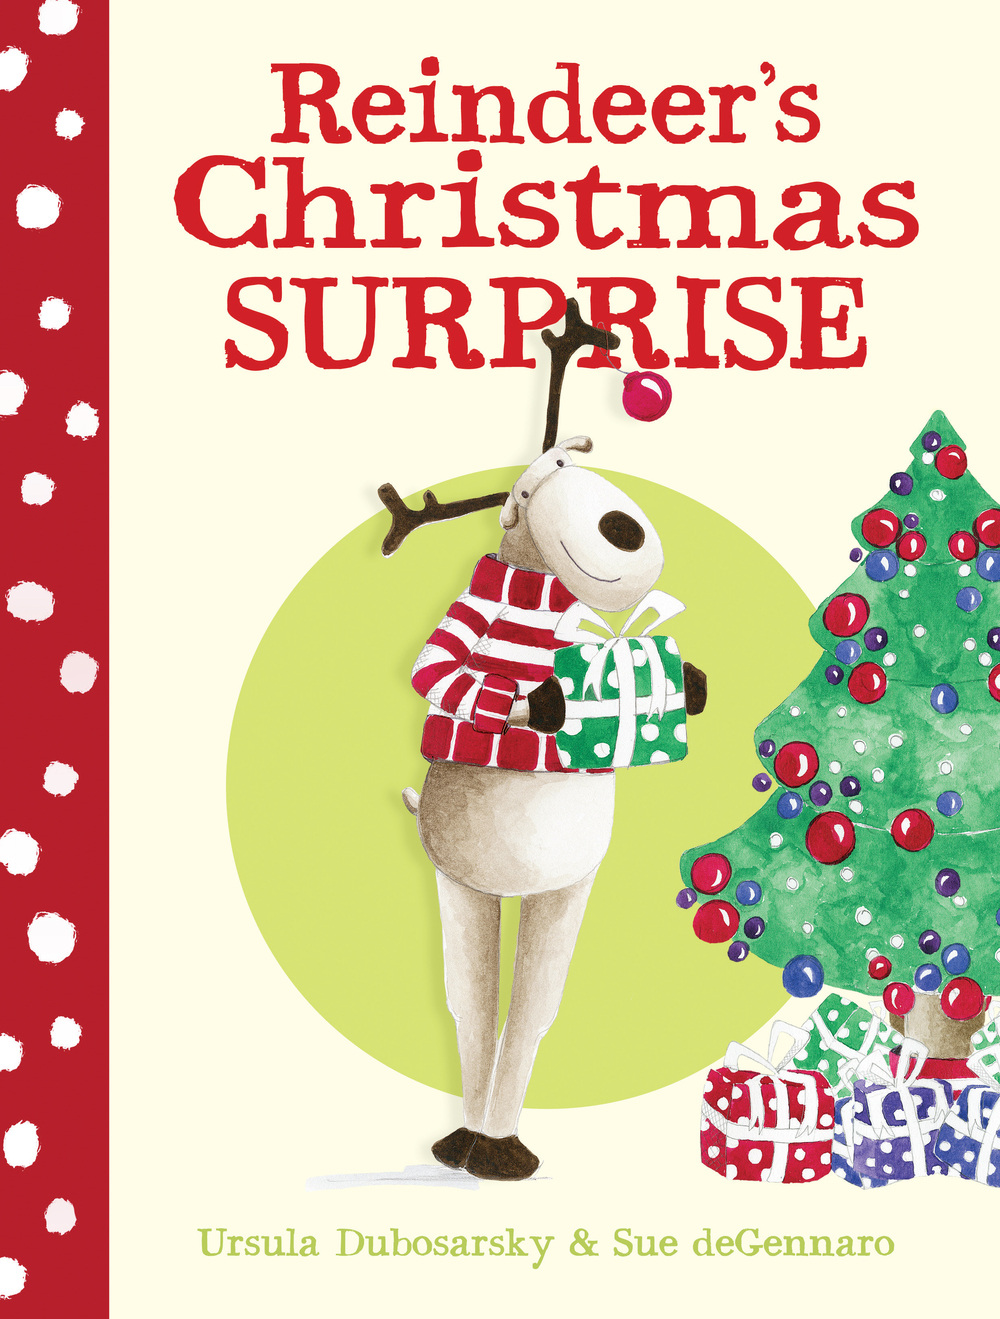 https://www.allenandunwin.com/browse/books/childrens/picture-books/Reindeers-Christmas-Surprise-Ursula-Dubosarsky-and-Sue-deGennaro-9781760113025